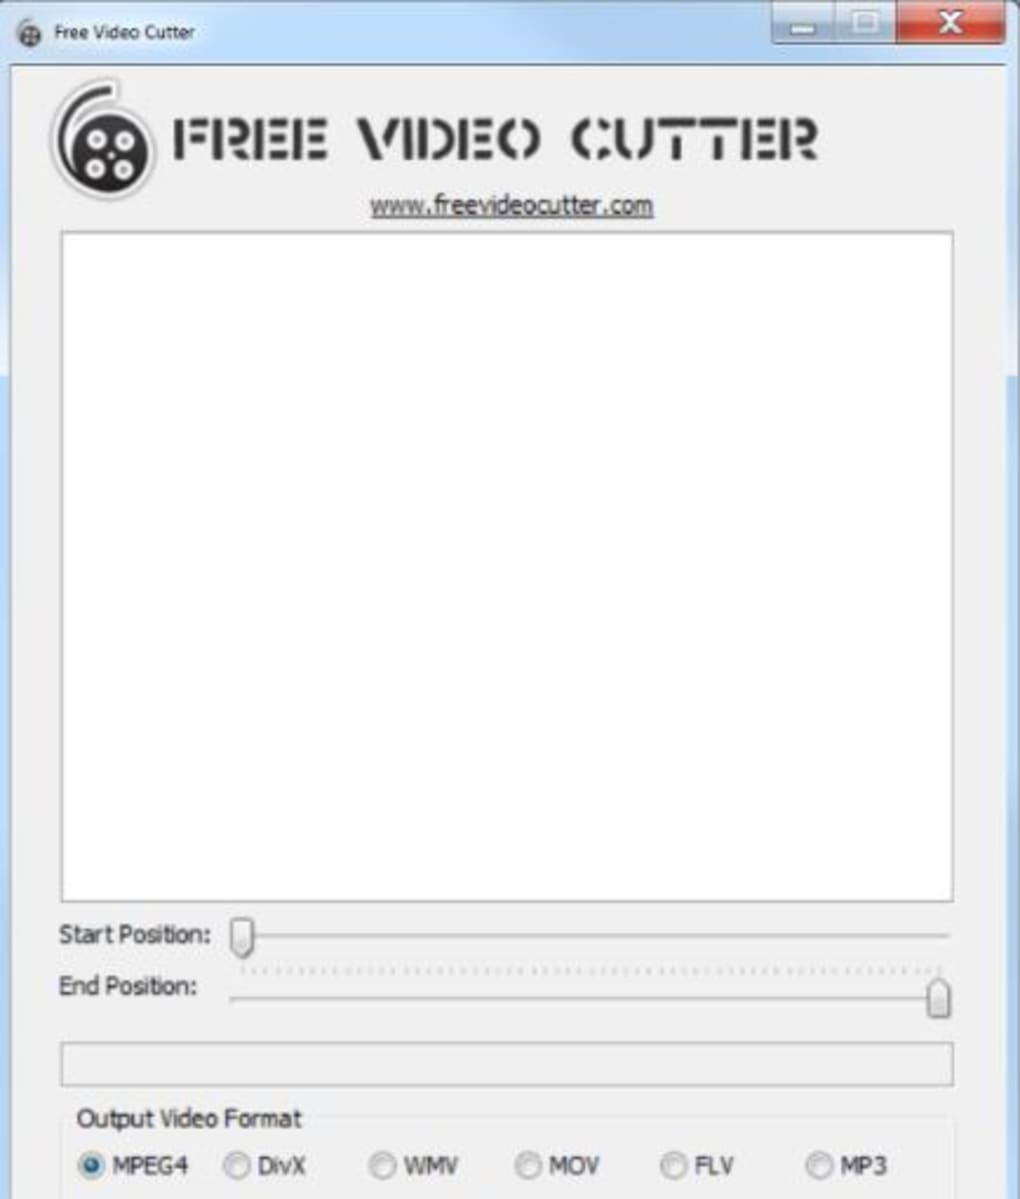 Free Video Cutter - Download